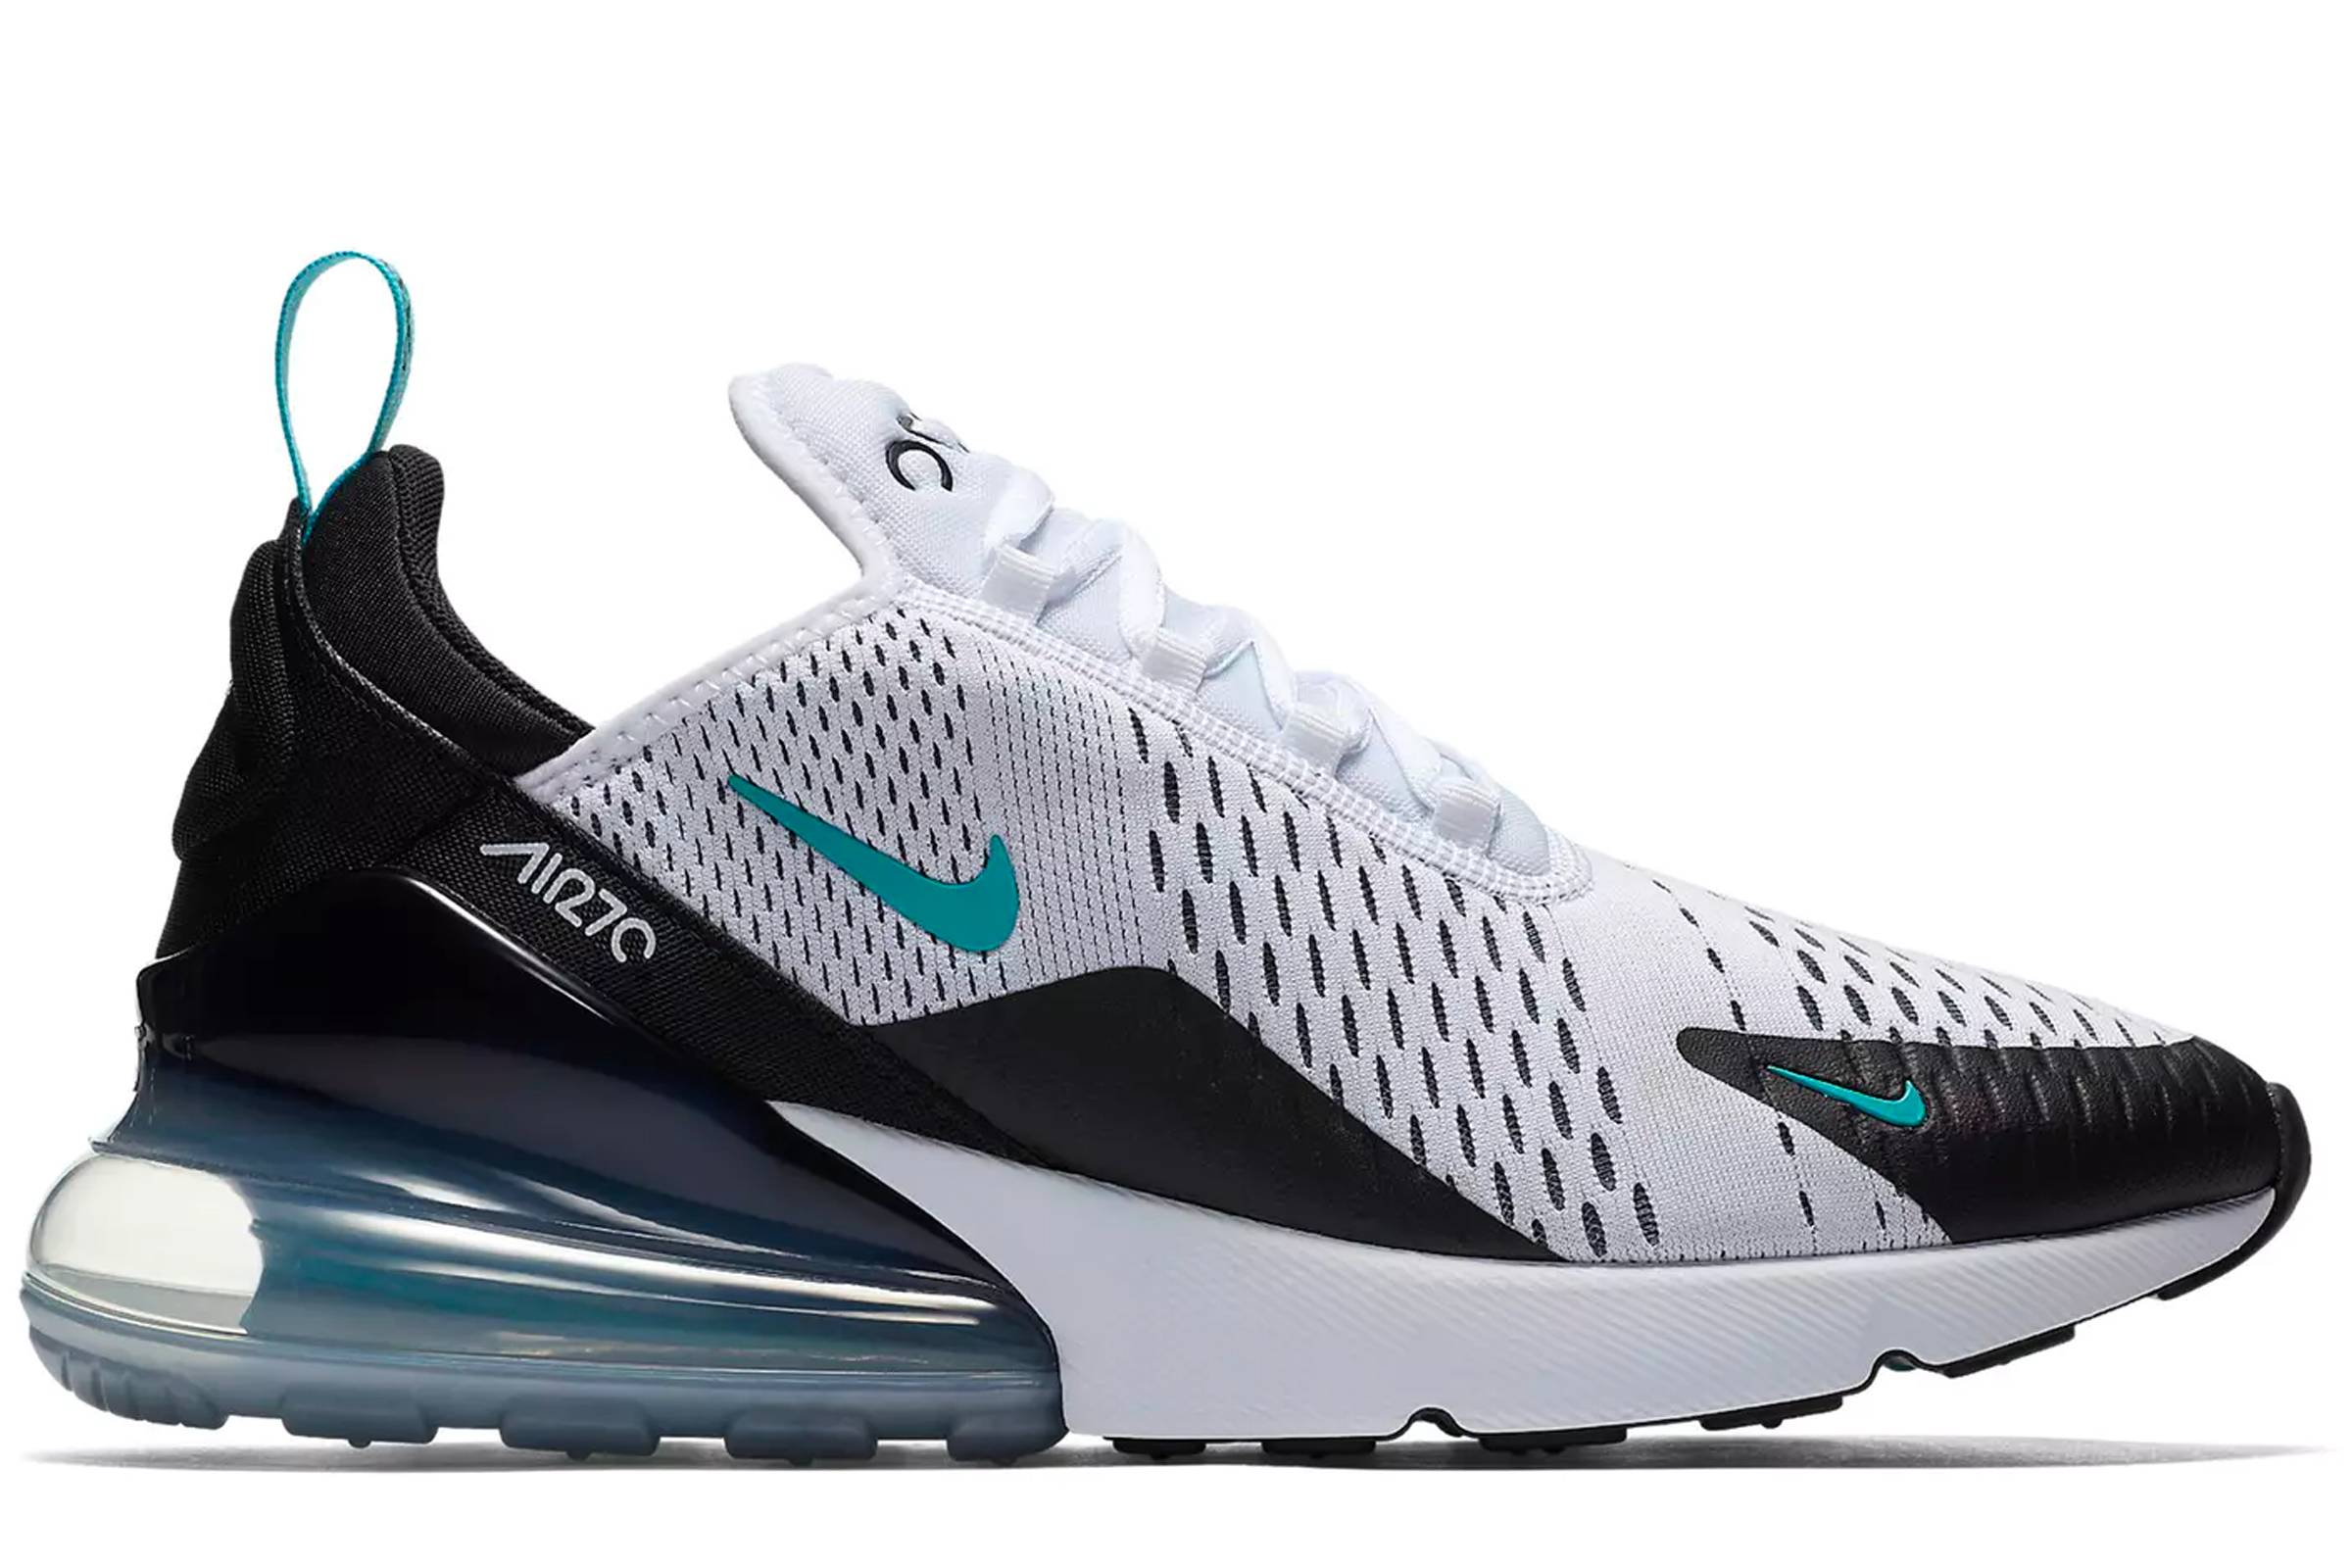 907e1c0105bc Air Max 270 Dusty Cactus (inspired by the Air Max 93 s original release Dusty  Cactus colorway)